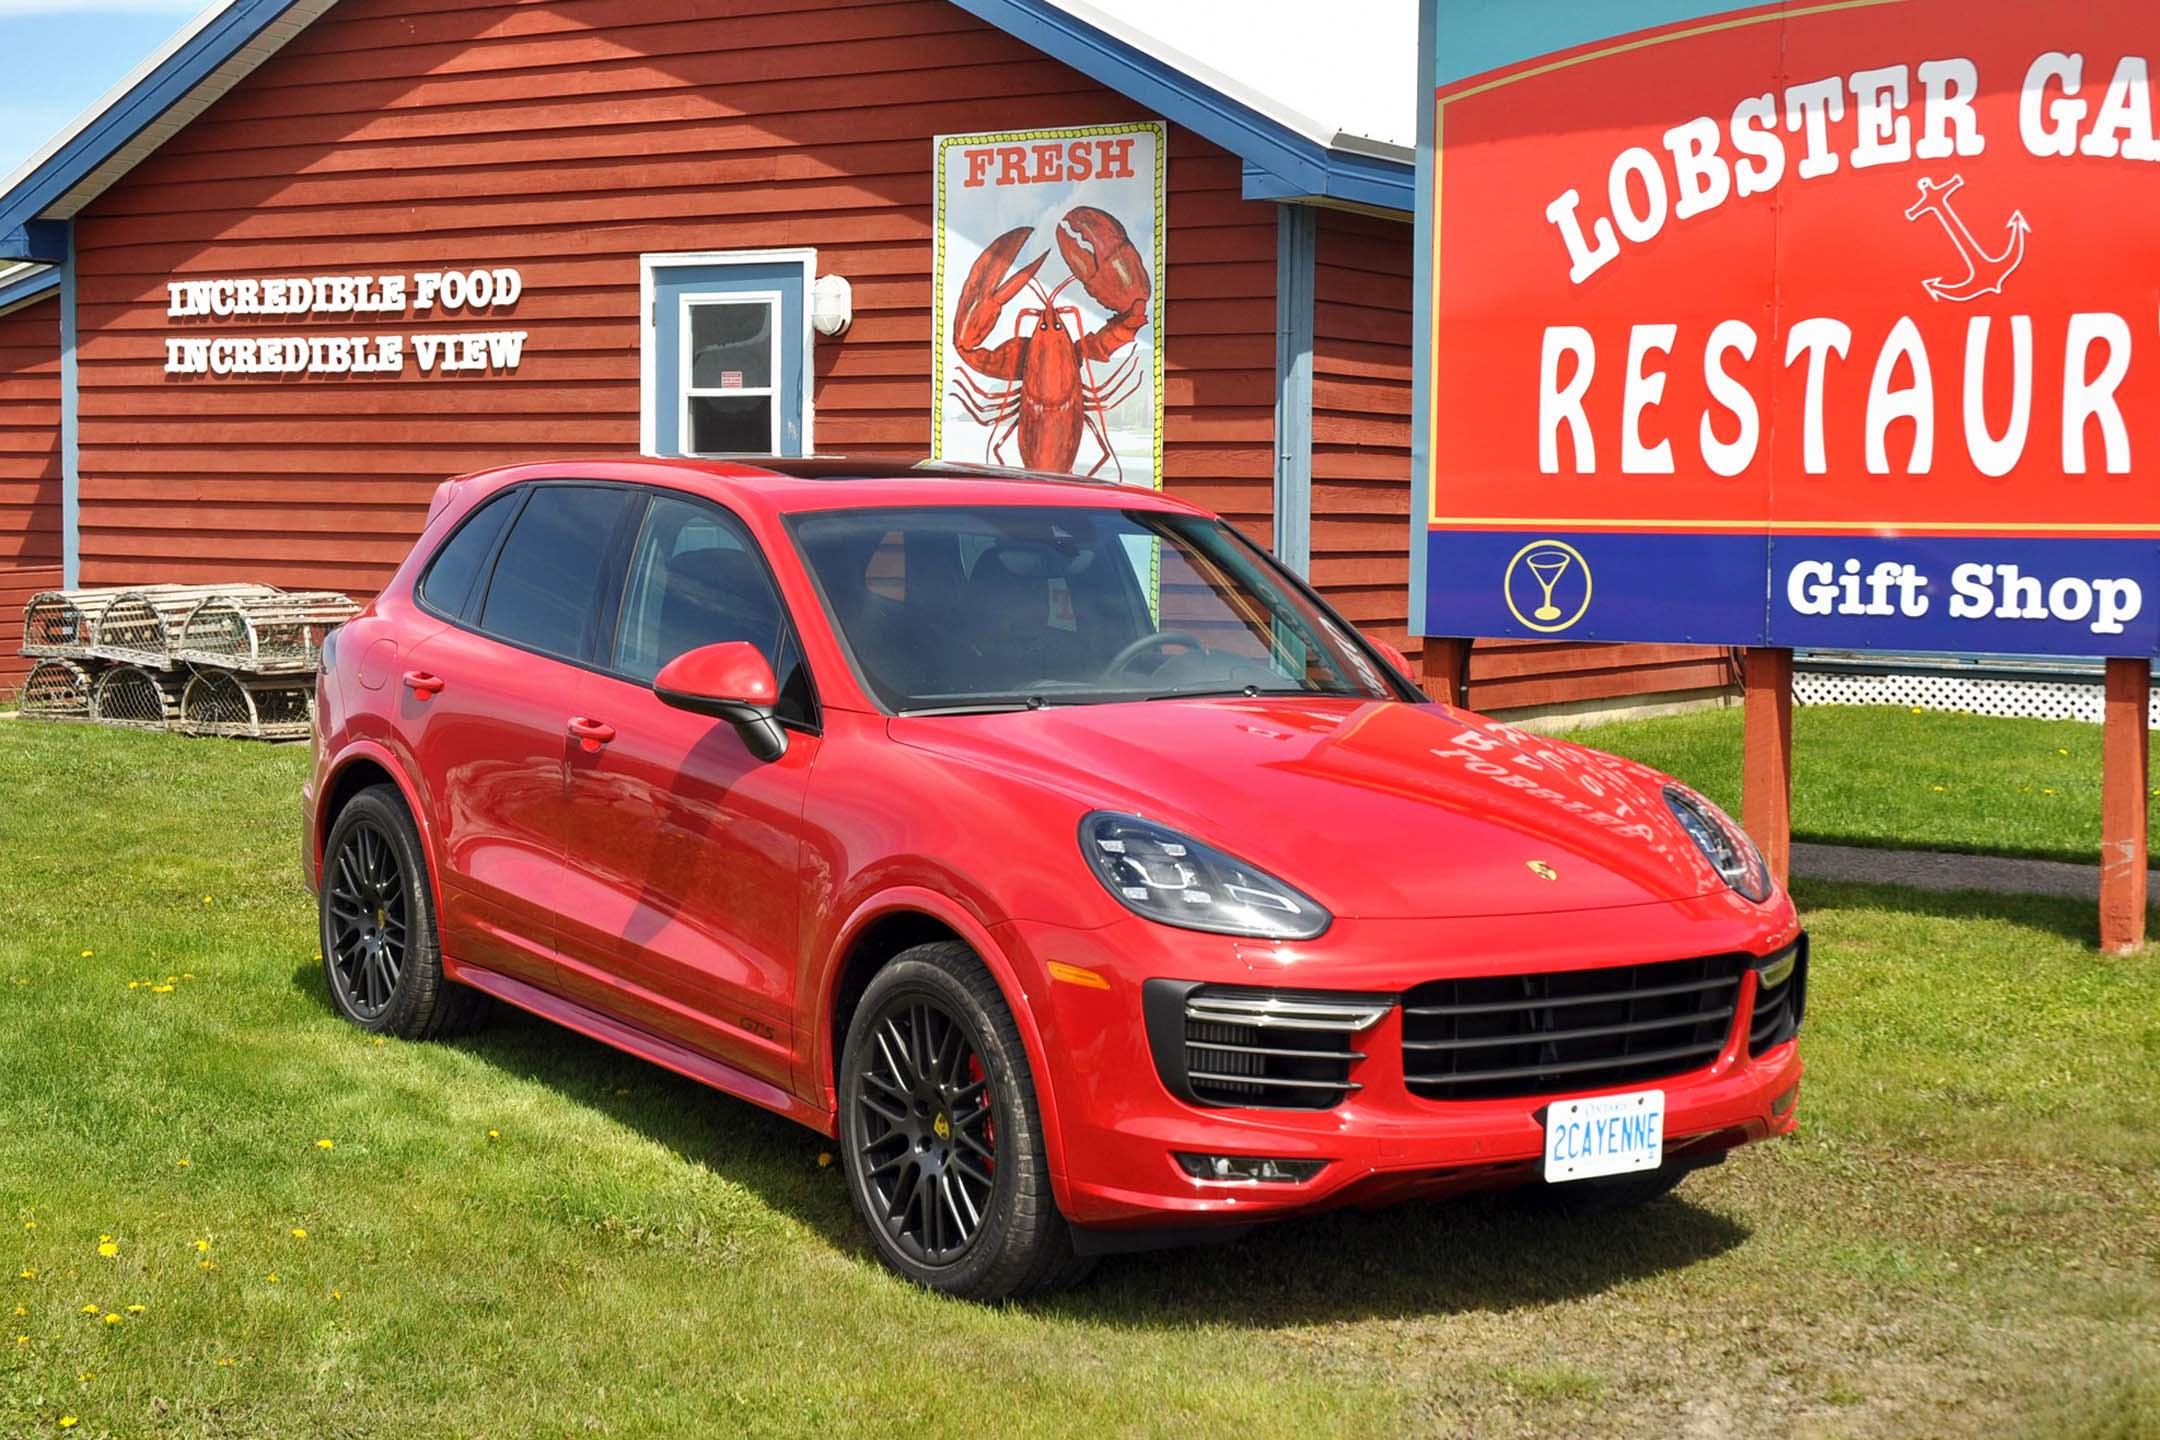 2017 Porsche Cayenne Gts First Drive Review